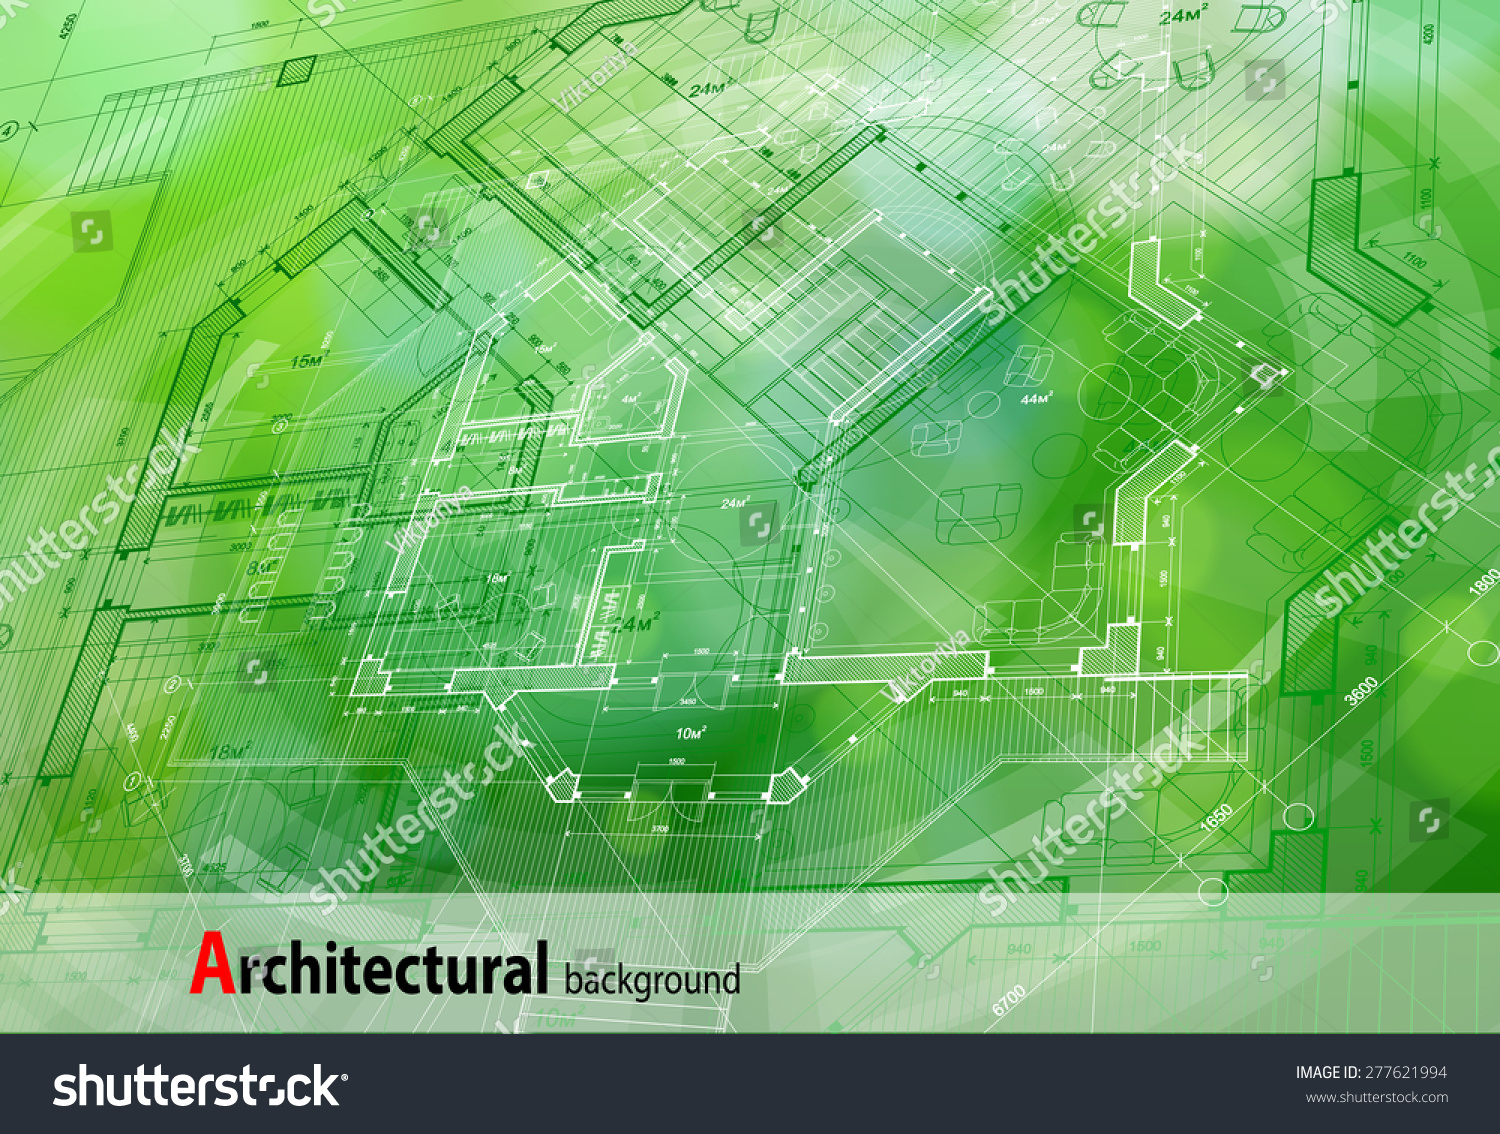 Architecture design blueprint house plan green stock for Architecture blueprint